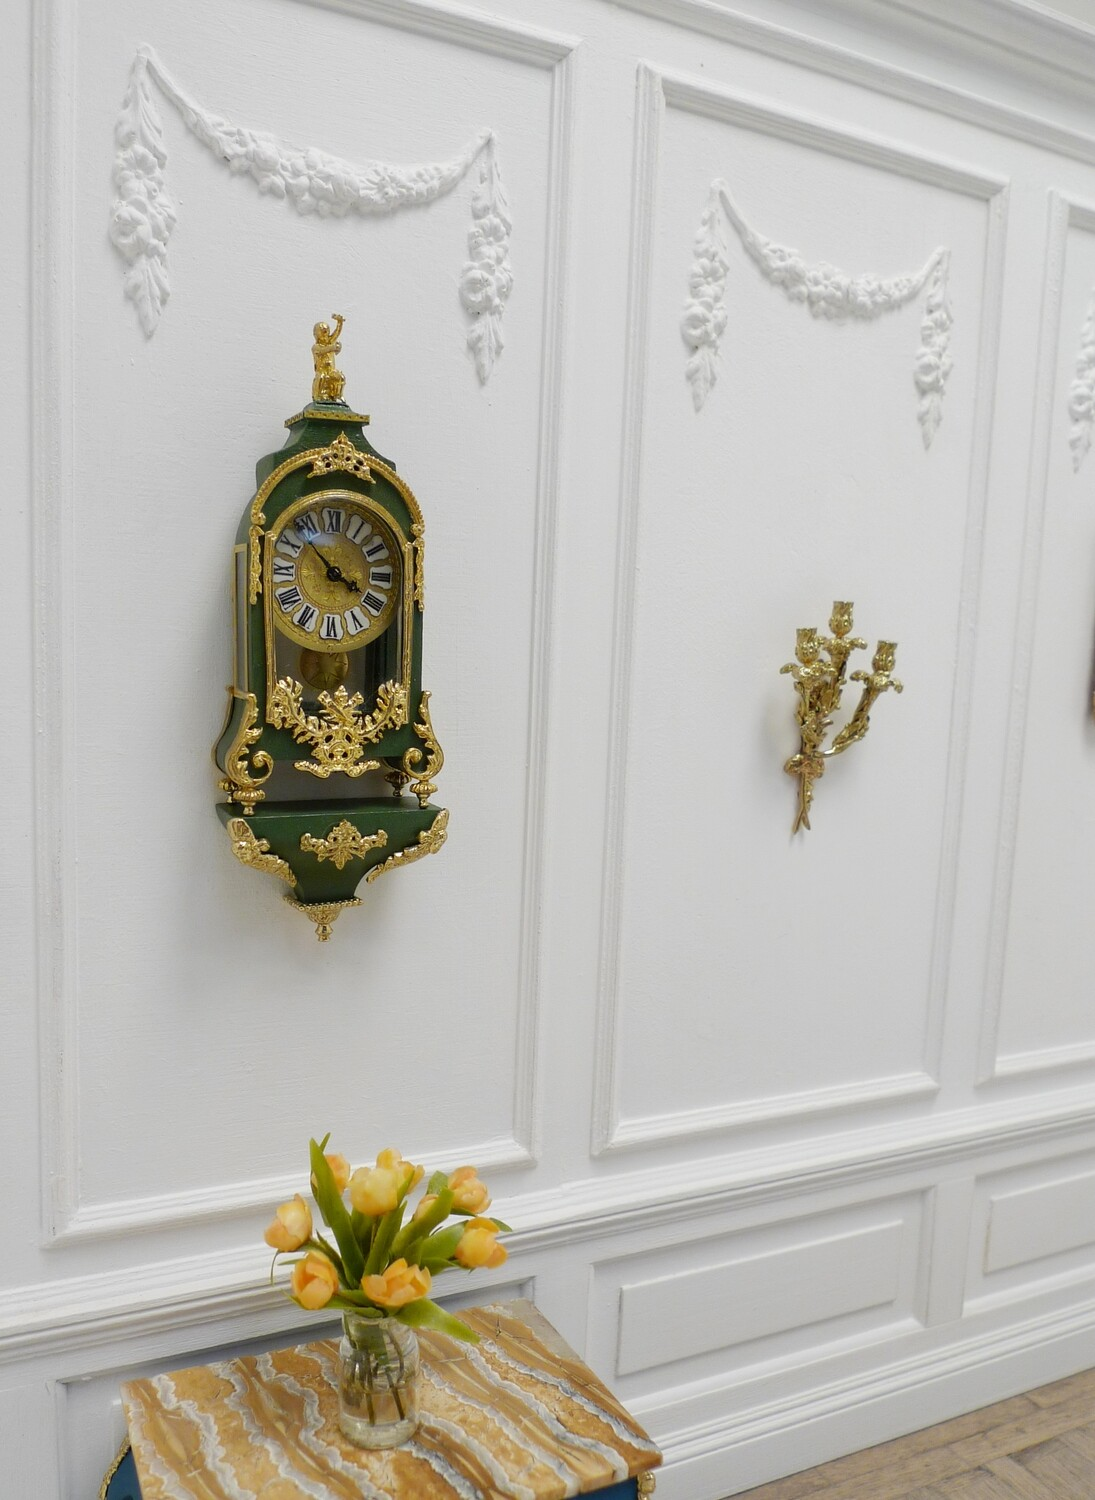 French Ormolu bracket clock